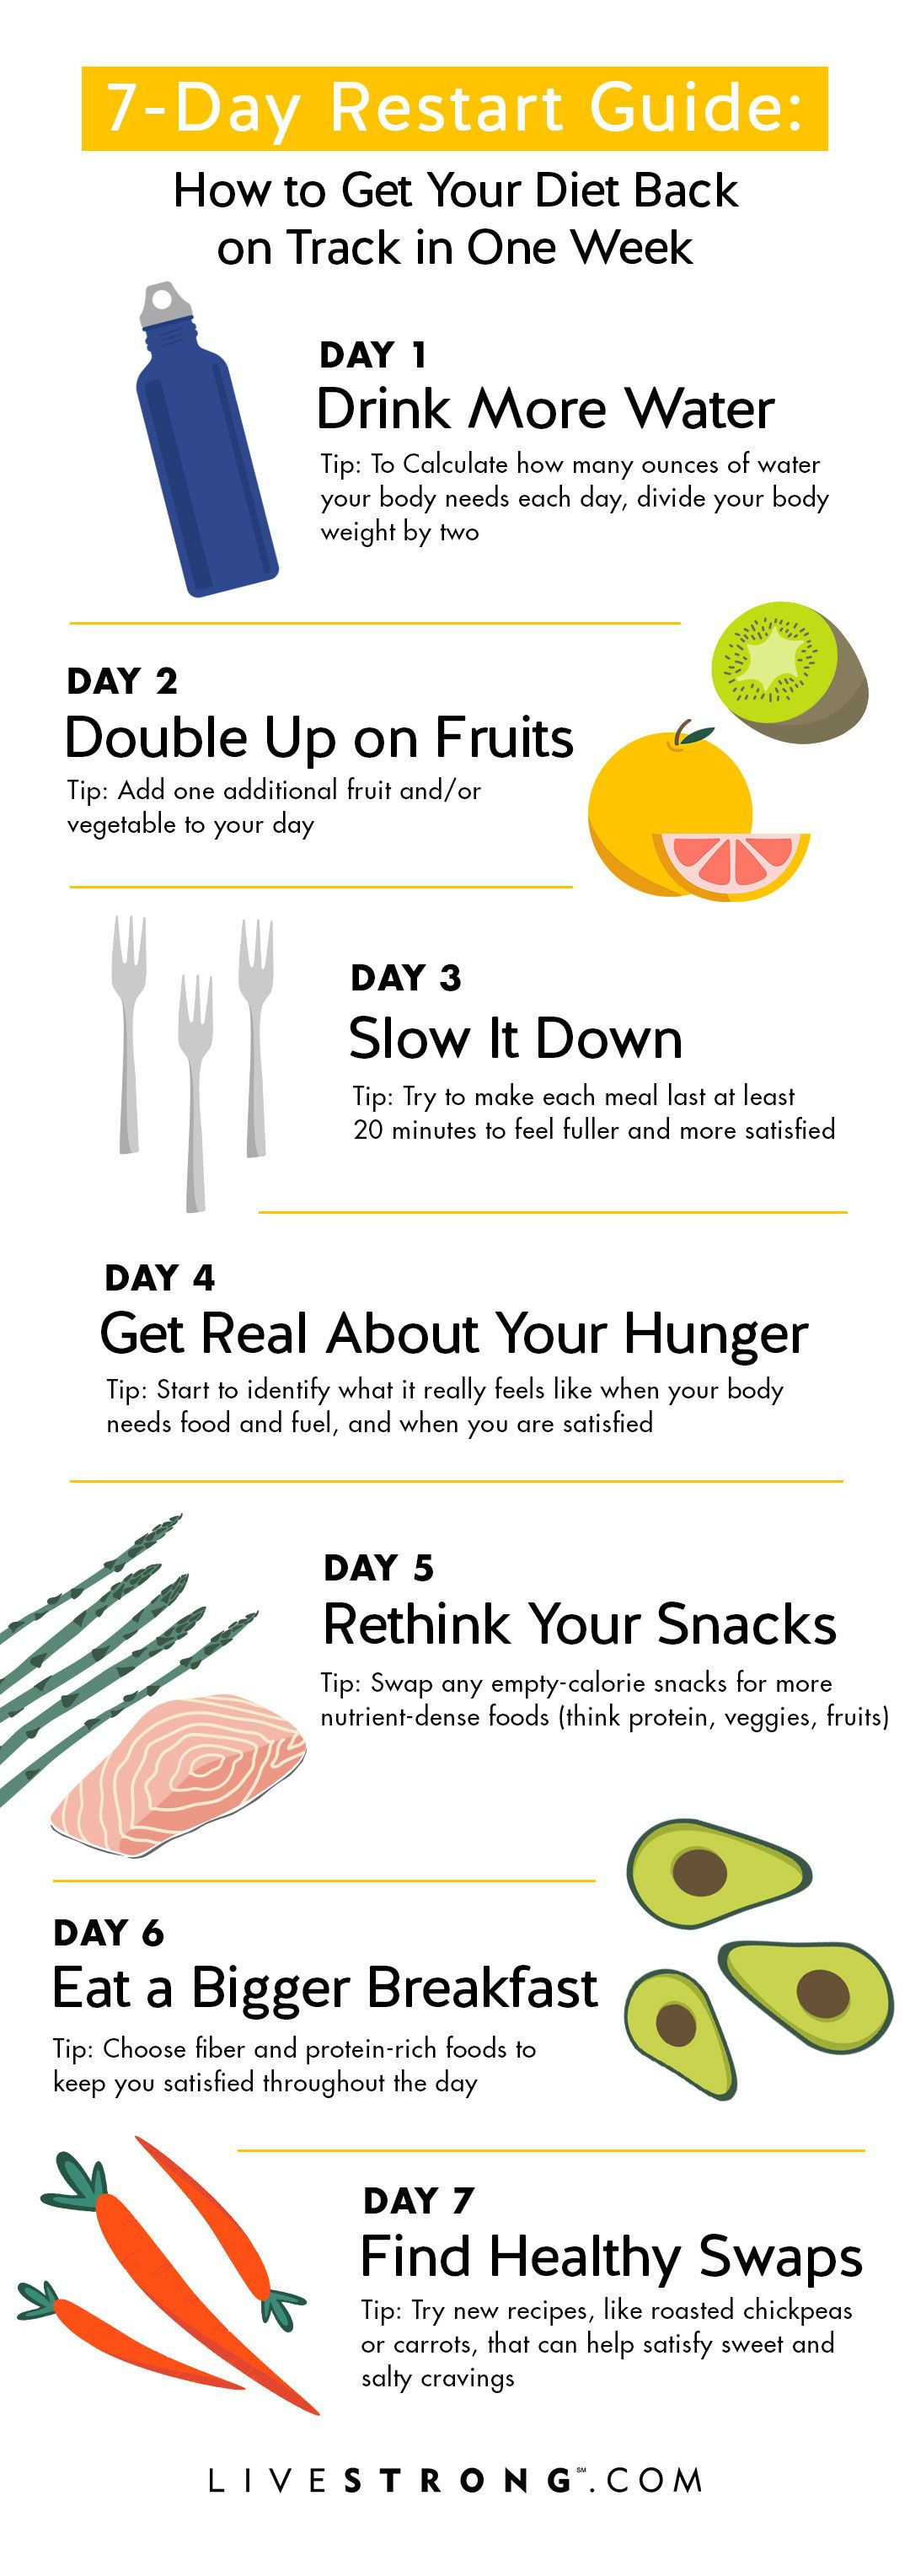 Your One-Week Plan to Get Your Diet Back on Track